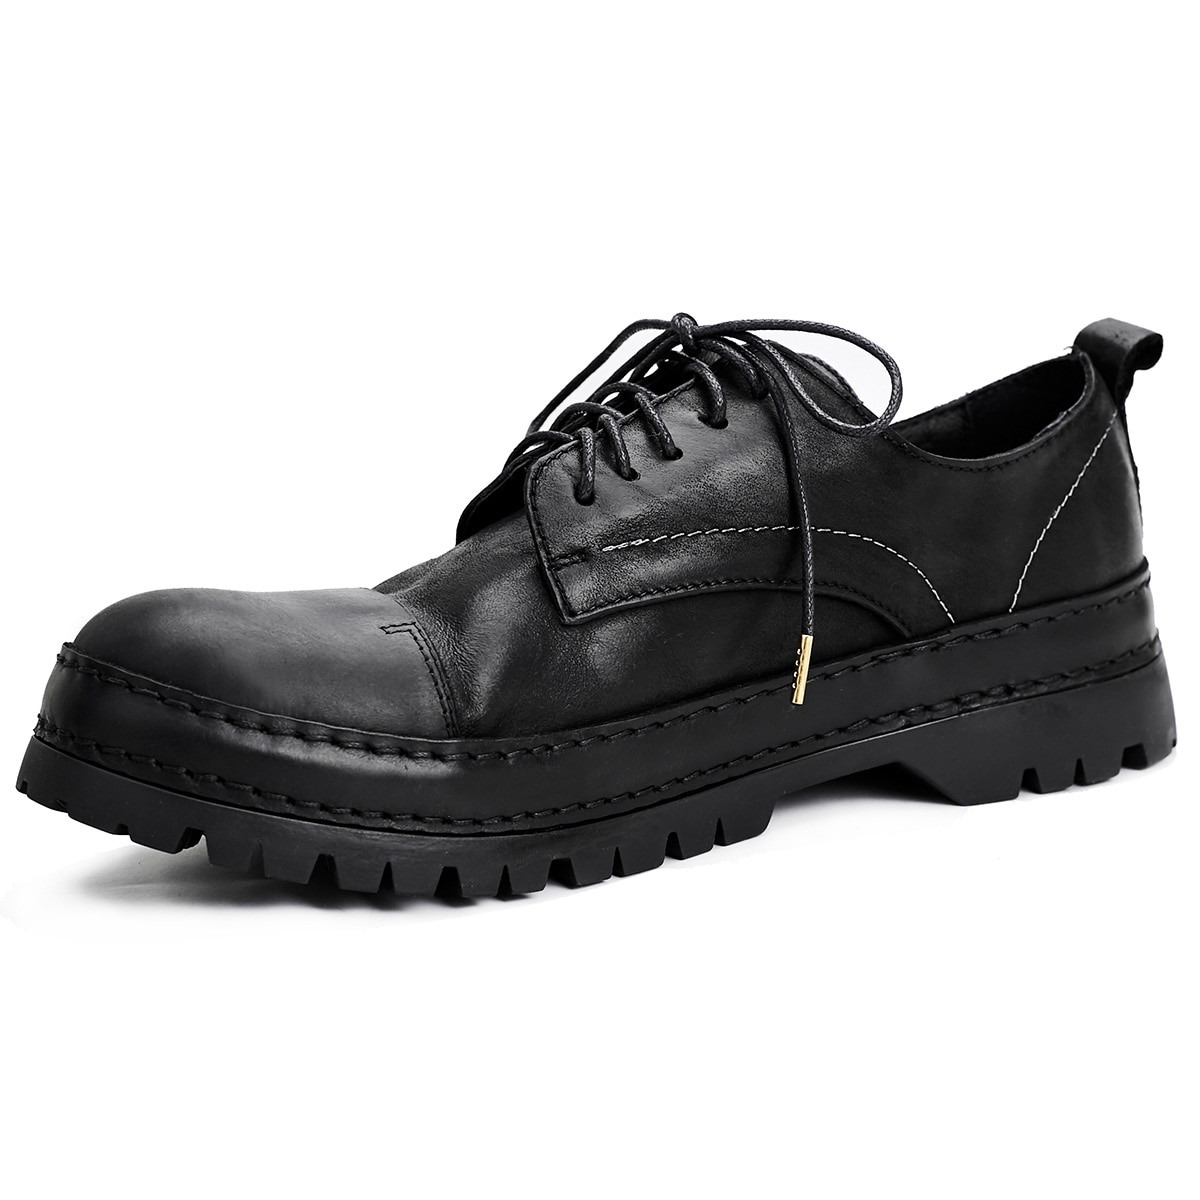 retro reflective harajuku muffin shoes female british college round toe lace up casual shoes leisure all match platform shoes New Spring Summer AutumnSoft Soled British Business Casual Shoes Mens All-match Cowhide Lace-Up Men Dress Shoes British Retro